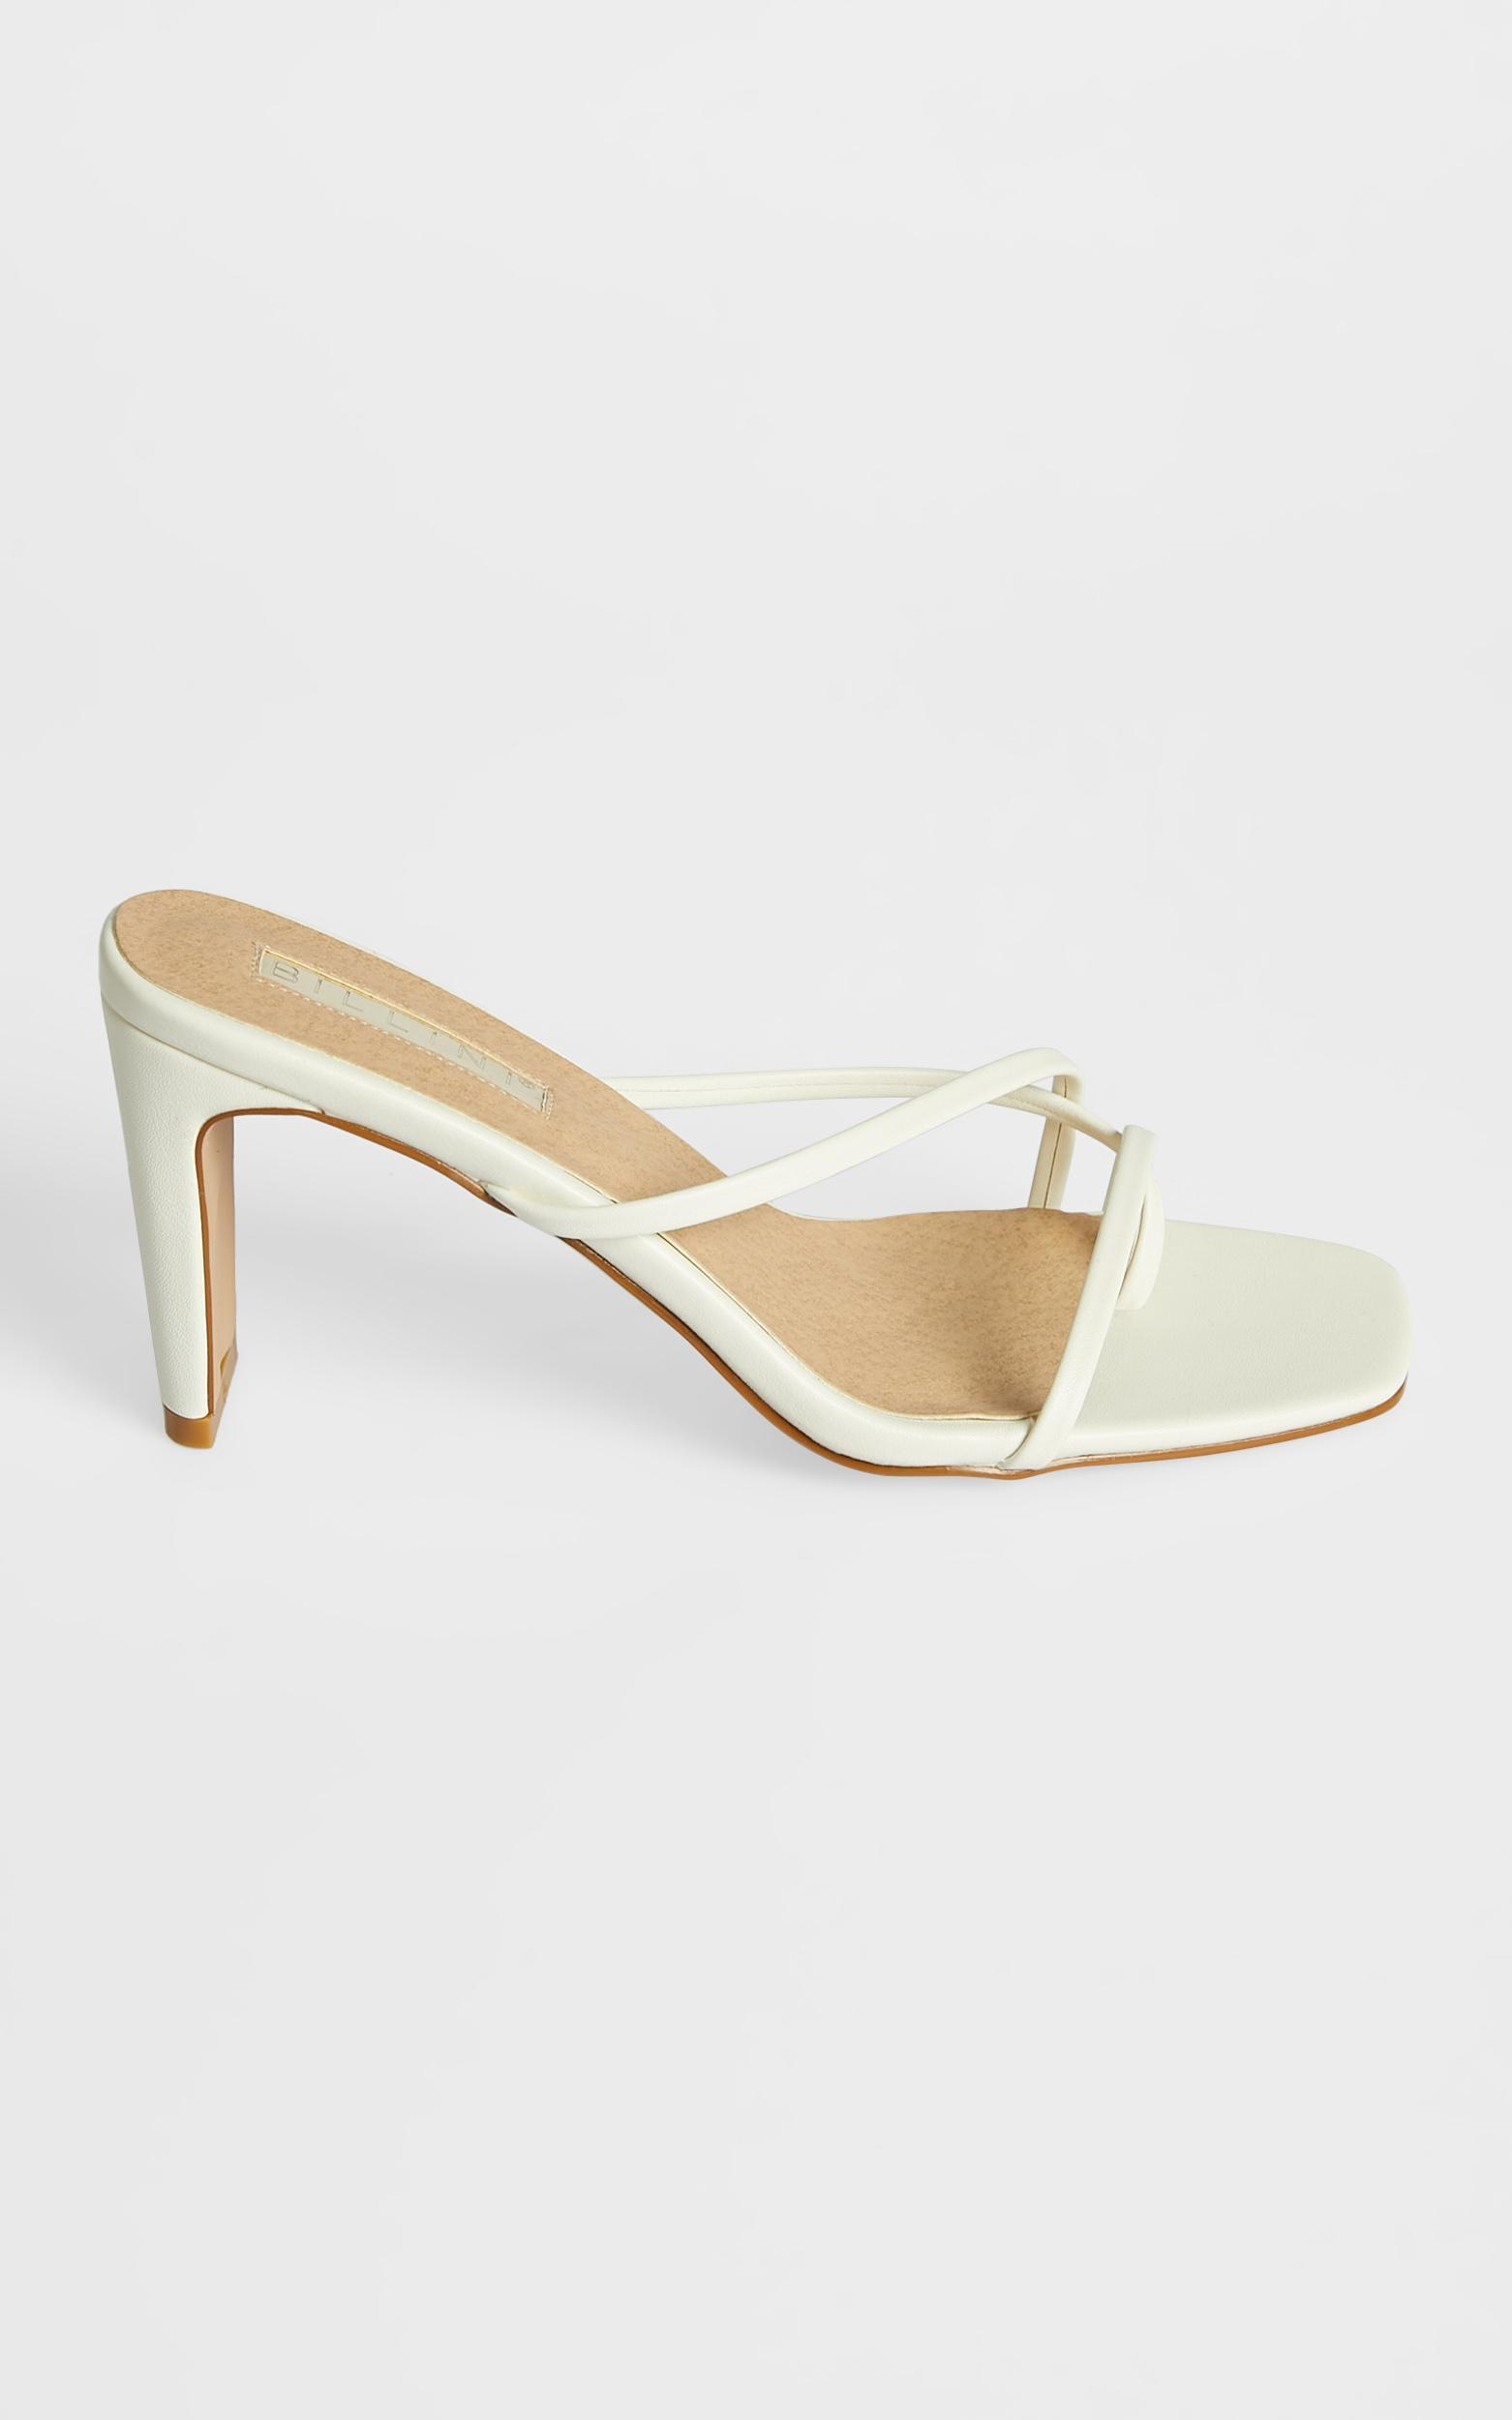 Billini - Story Heels in White - 5, White, hi-res image number null